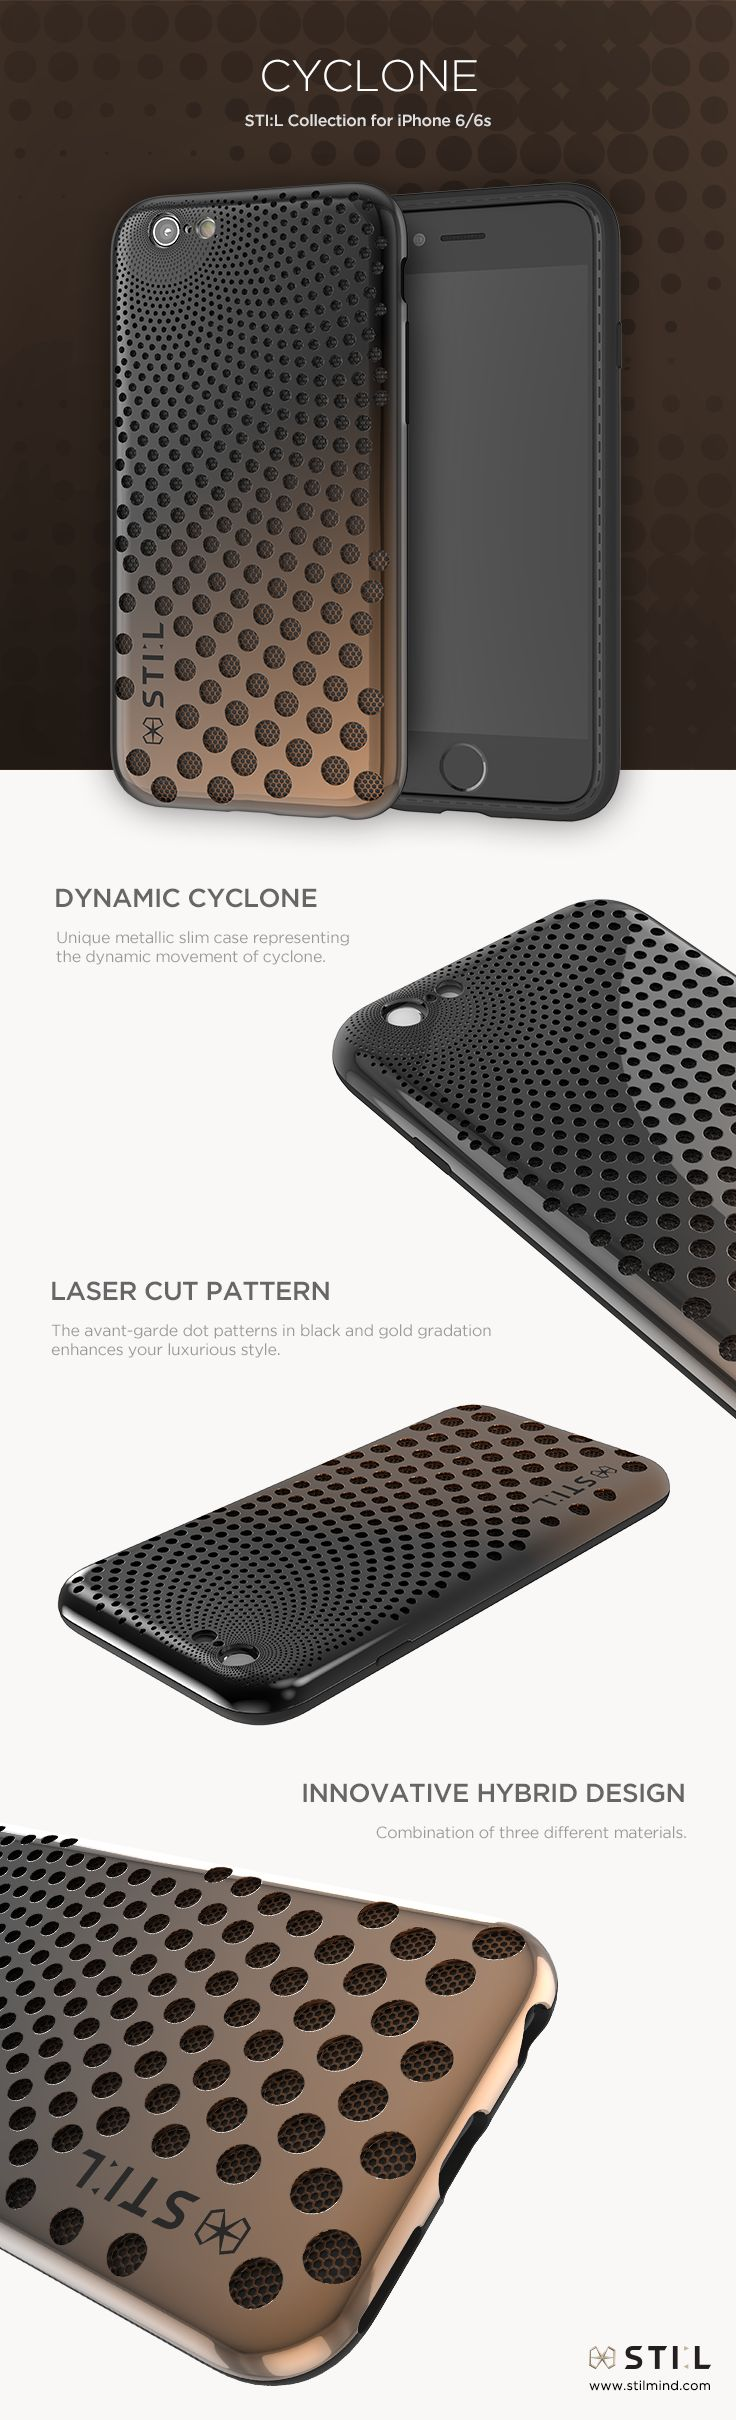 CYCLONE - Dynamic cyclone effects moving unexpectedly. Available in Black Gold #dynamic #dotpattern #dot #stil #stilcase #stilmind #mobile #fashion #design #case #iphone6 #iphone6s #2015fw